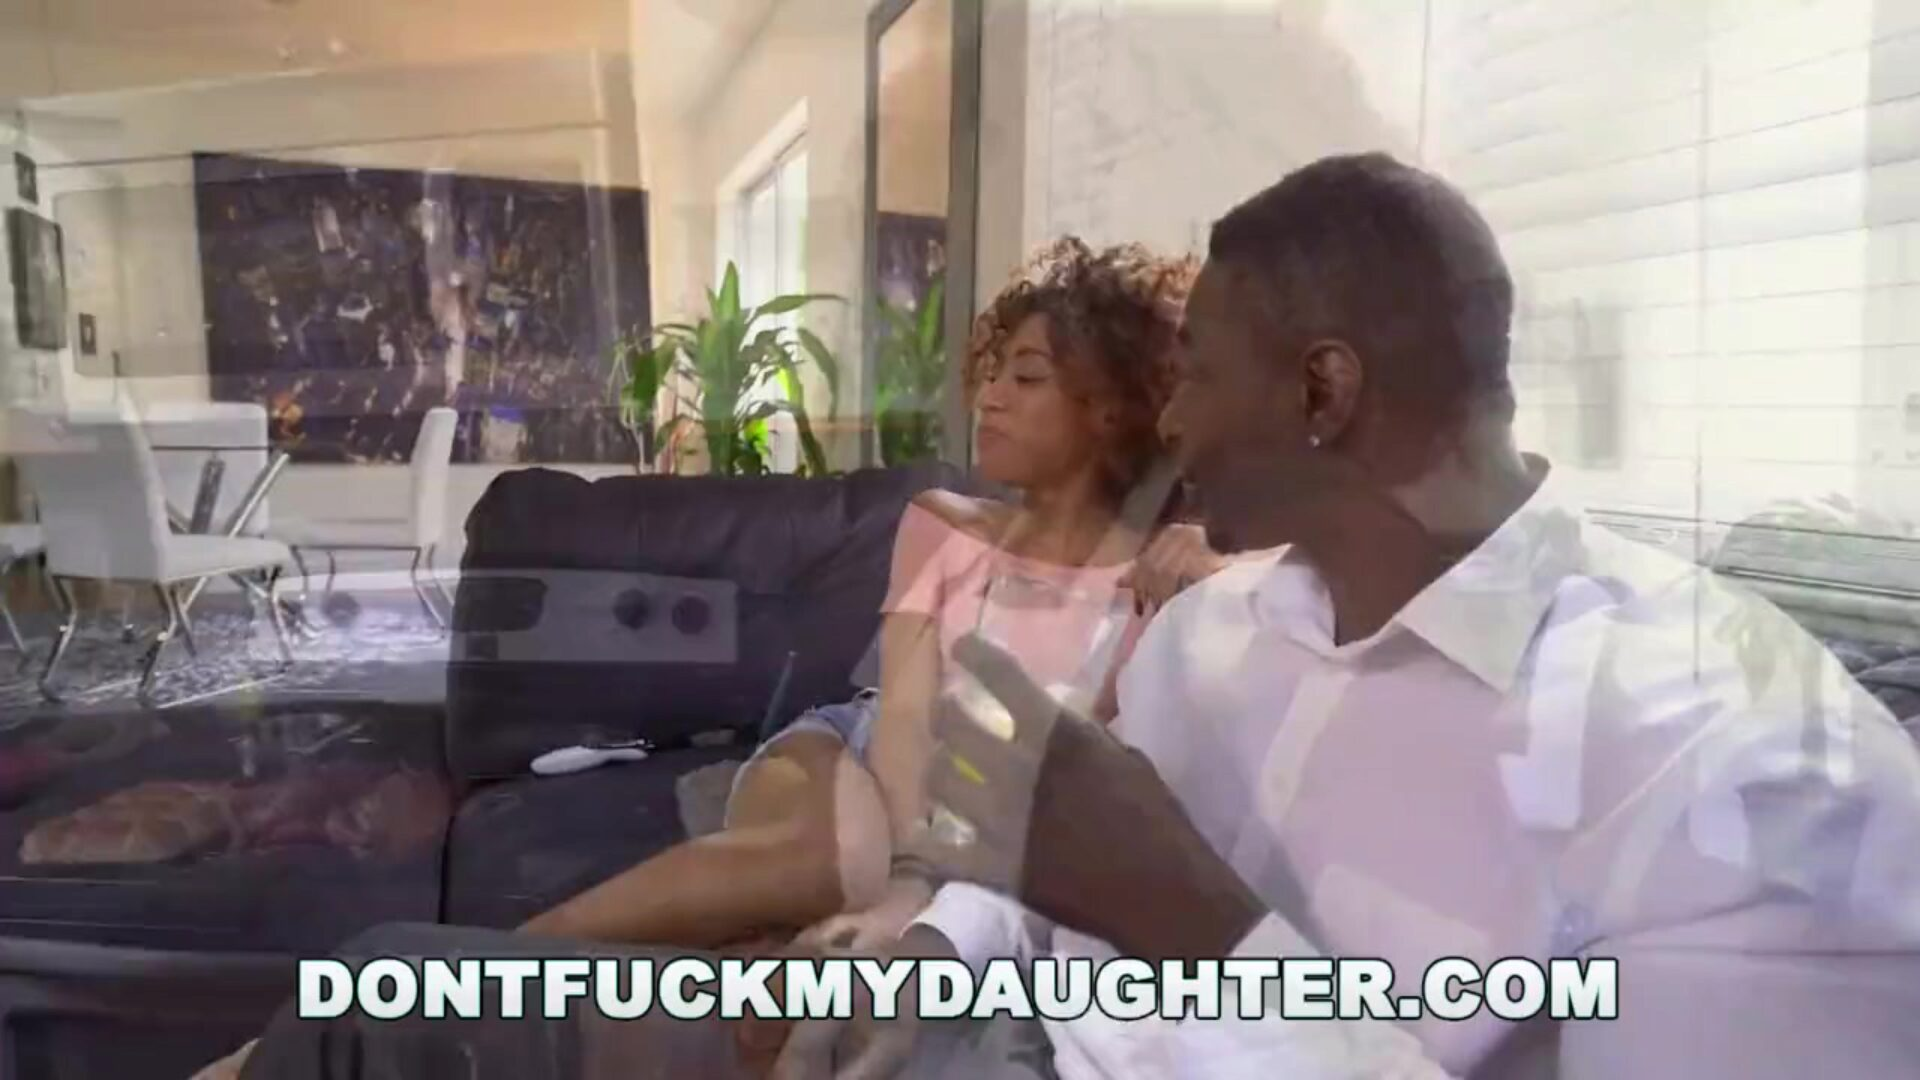 DON'T FUCK MY DAUGHTER - Ebony Teen Kendall Woods Suckin' Dick